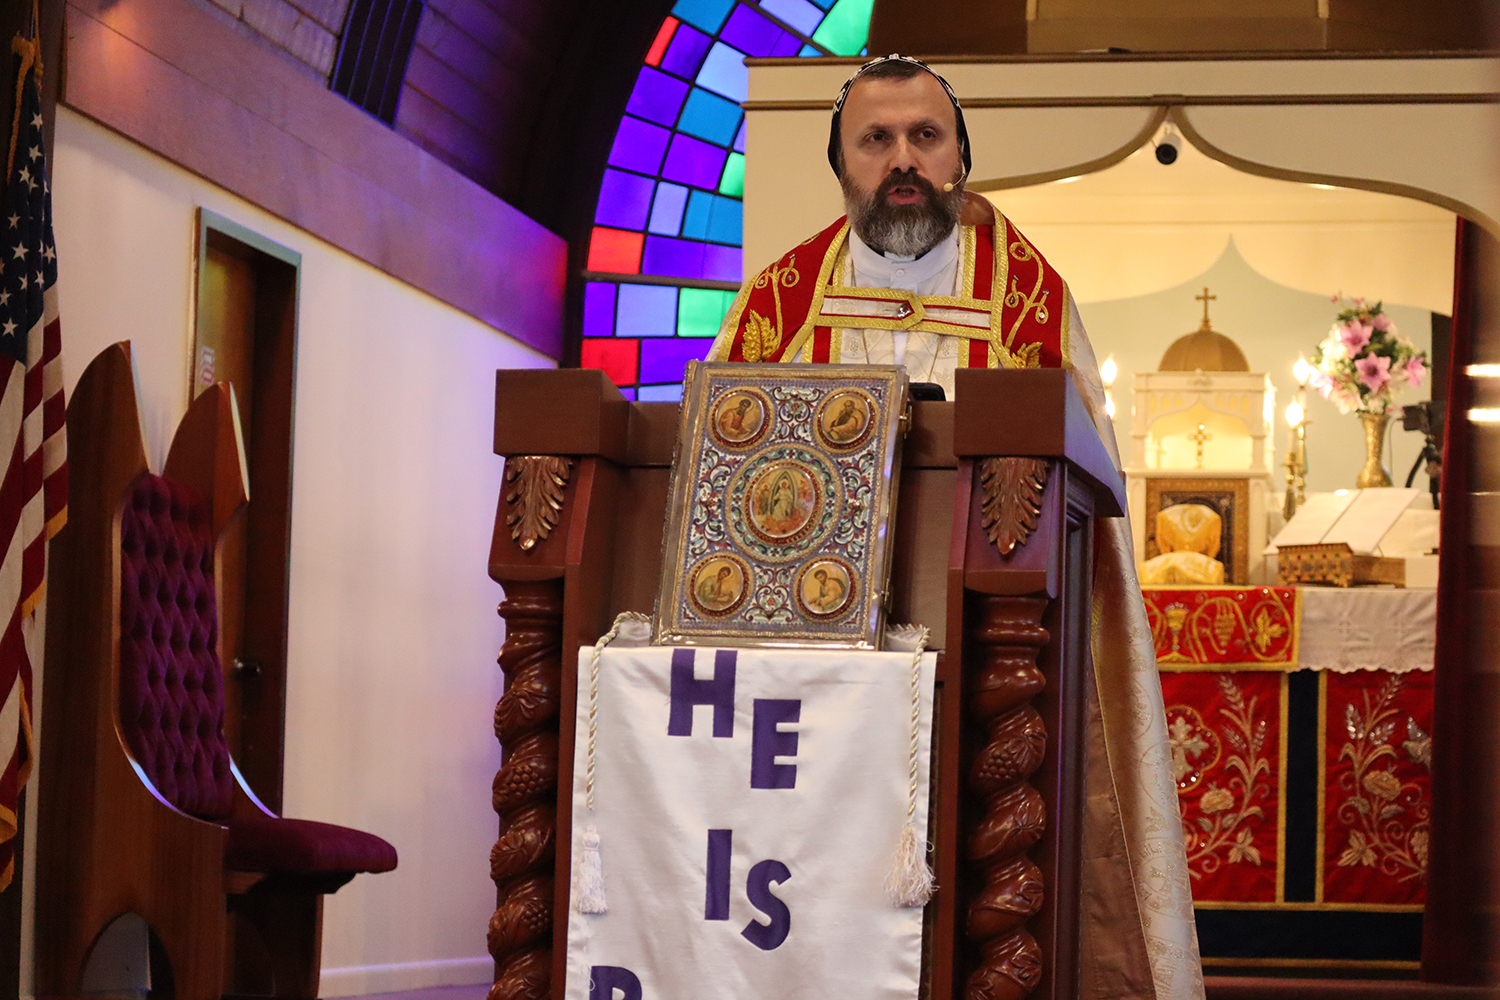 How to Follow God - By Father Andrew Bahhi